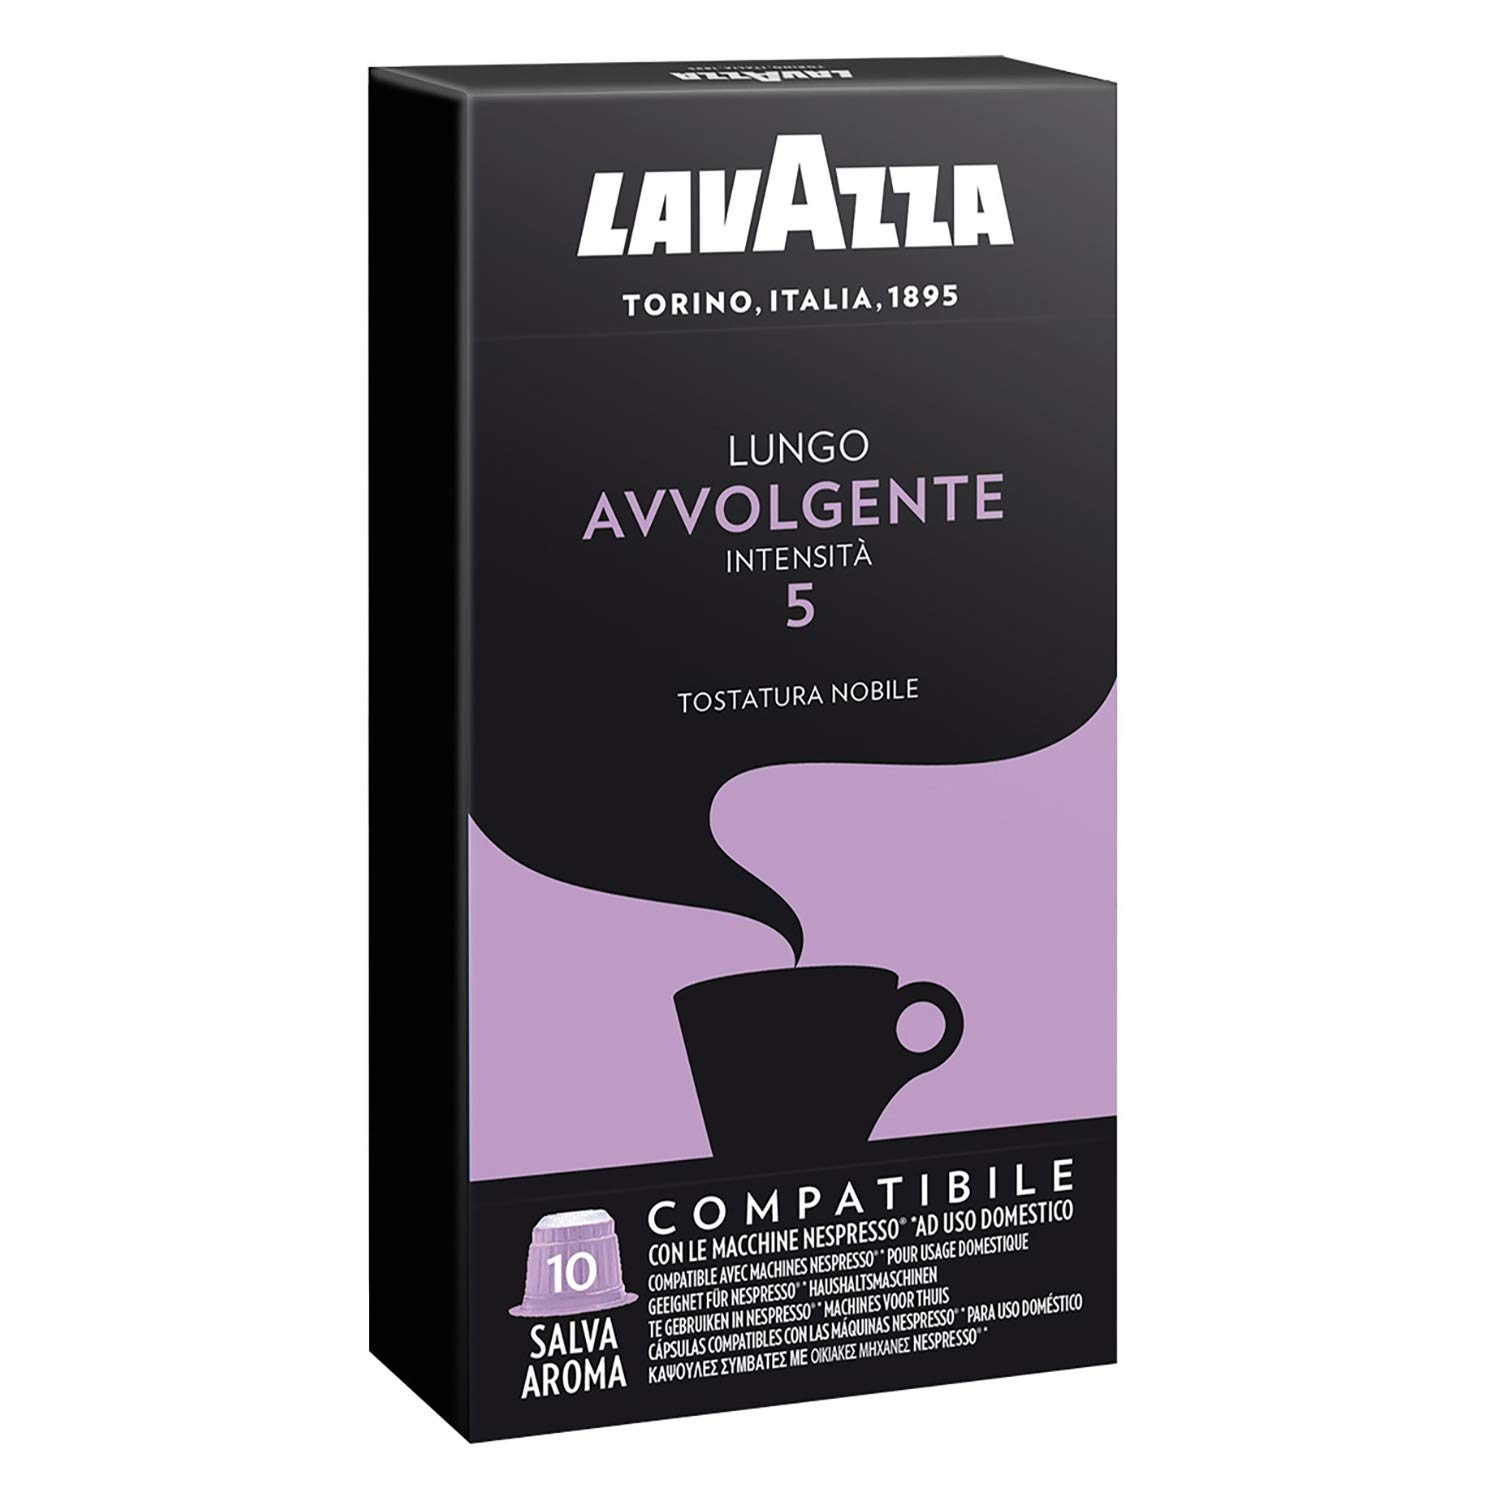 Lavazza Espresso Capsules Compatible With Nespresso - Lungo Avvolgente Flavor - Choose Quantity (2 Pack (20 Capsules)): Amazon.com: Grocery & Gourmet Food